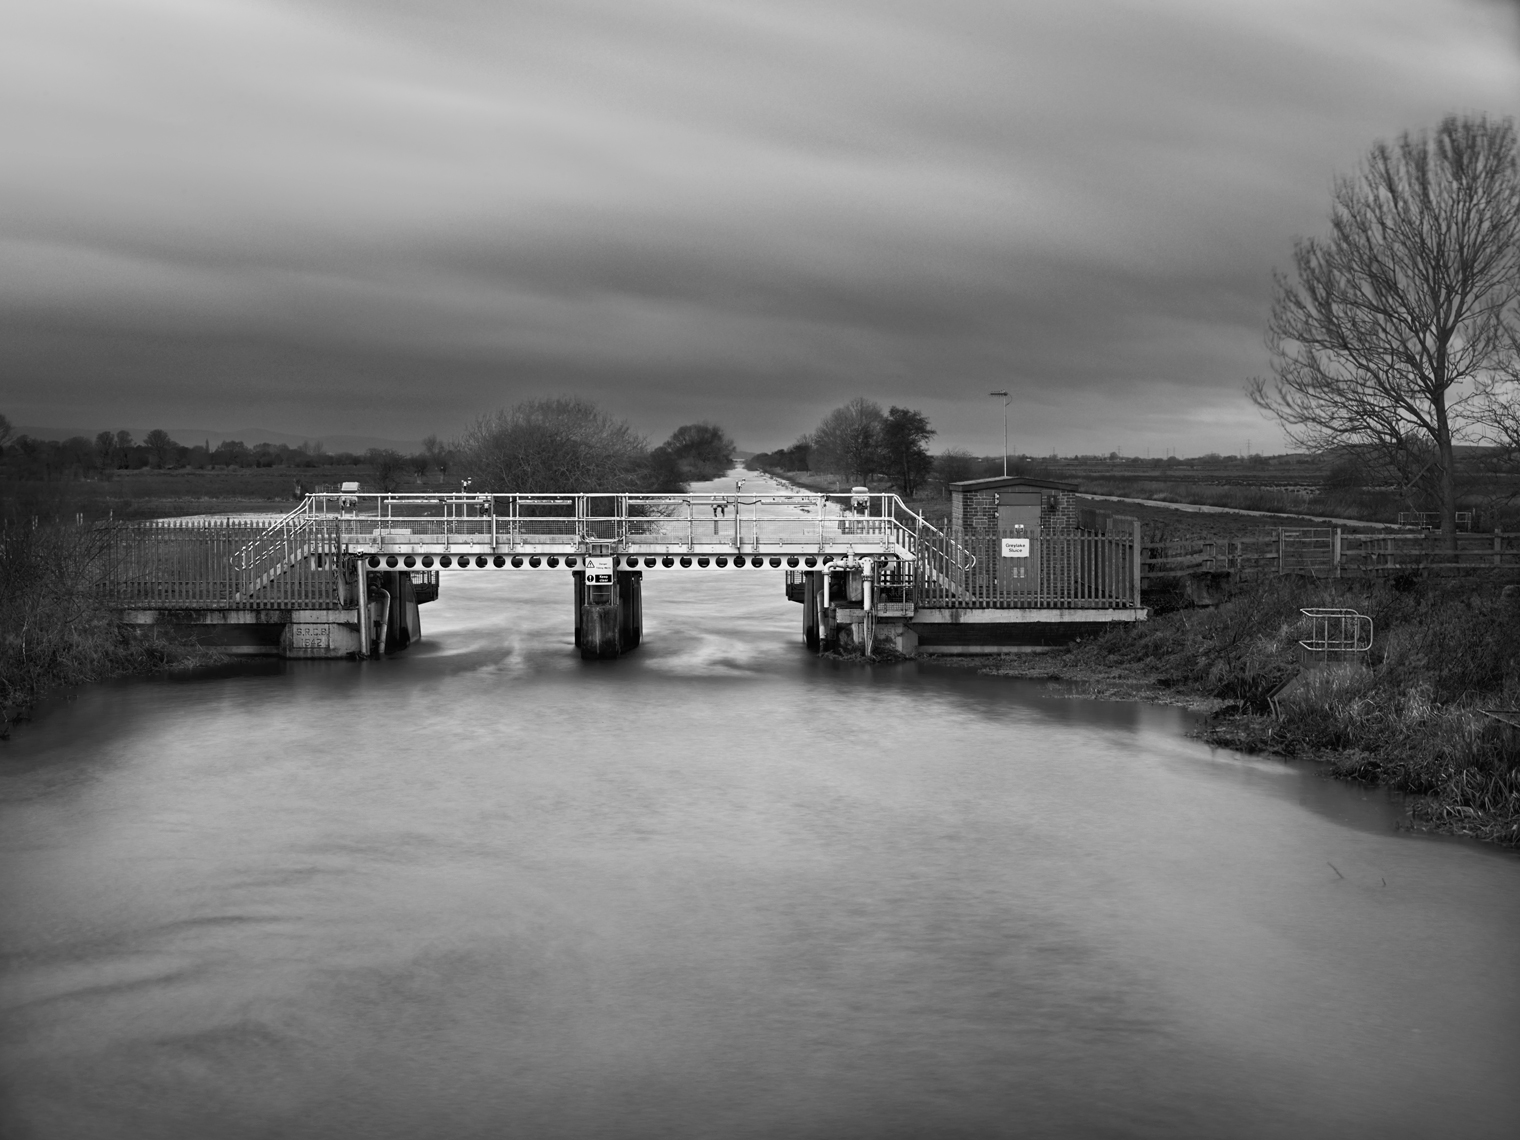 Jon Wyatt Photography - Greylake Sluice on sedgemoor Drain in Somerset